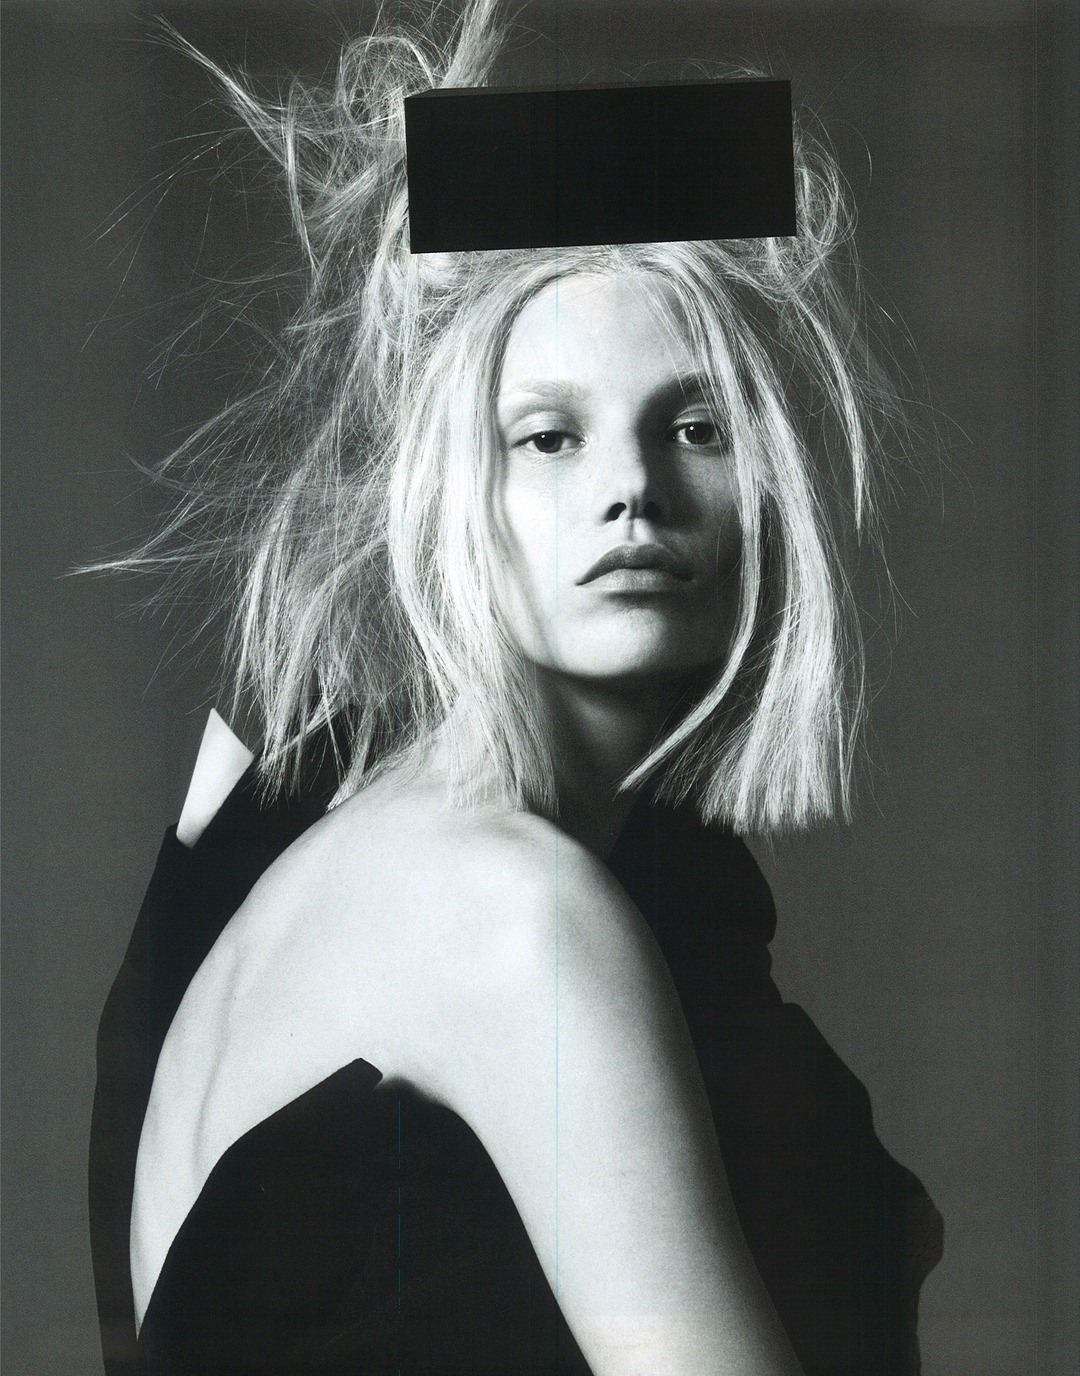 Suvi Koponen by Mert & Marcus for Vogue Paris March 2013